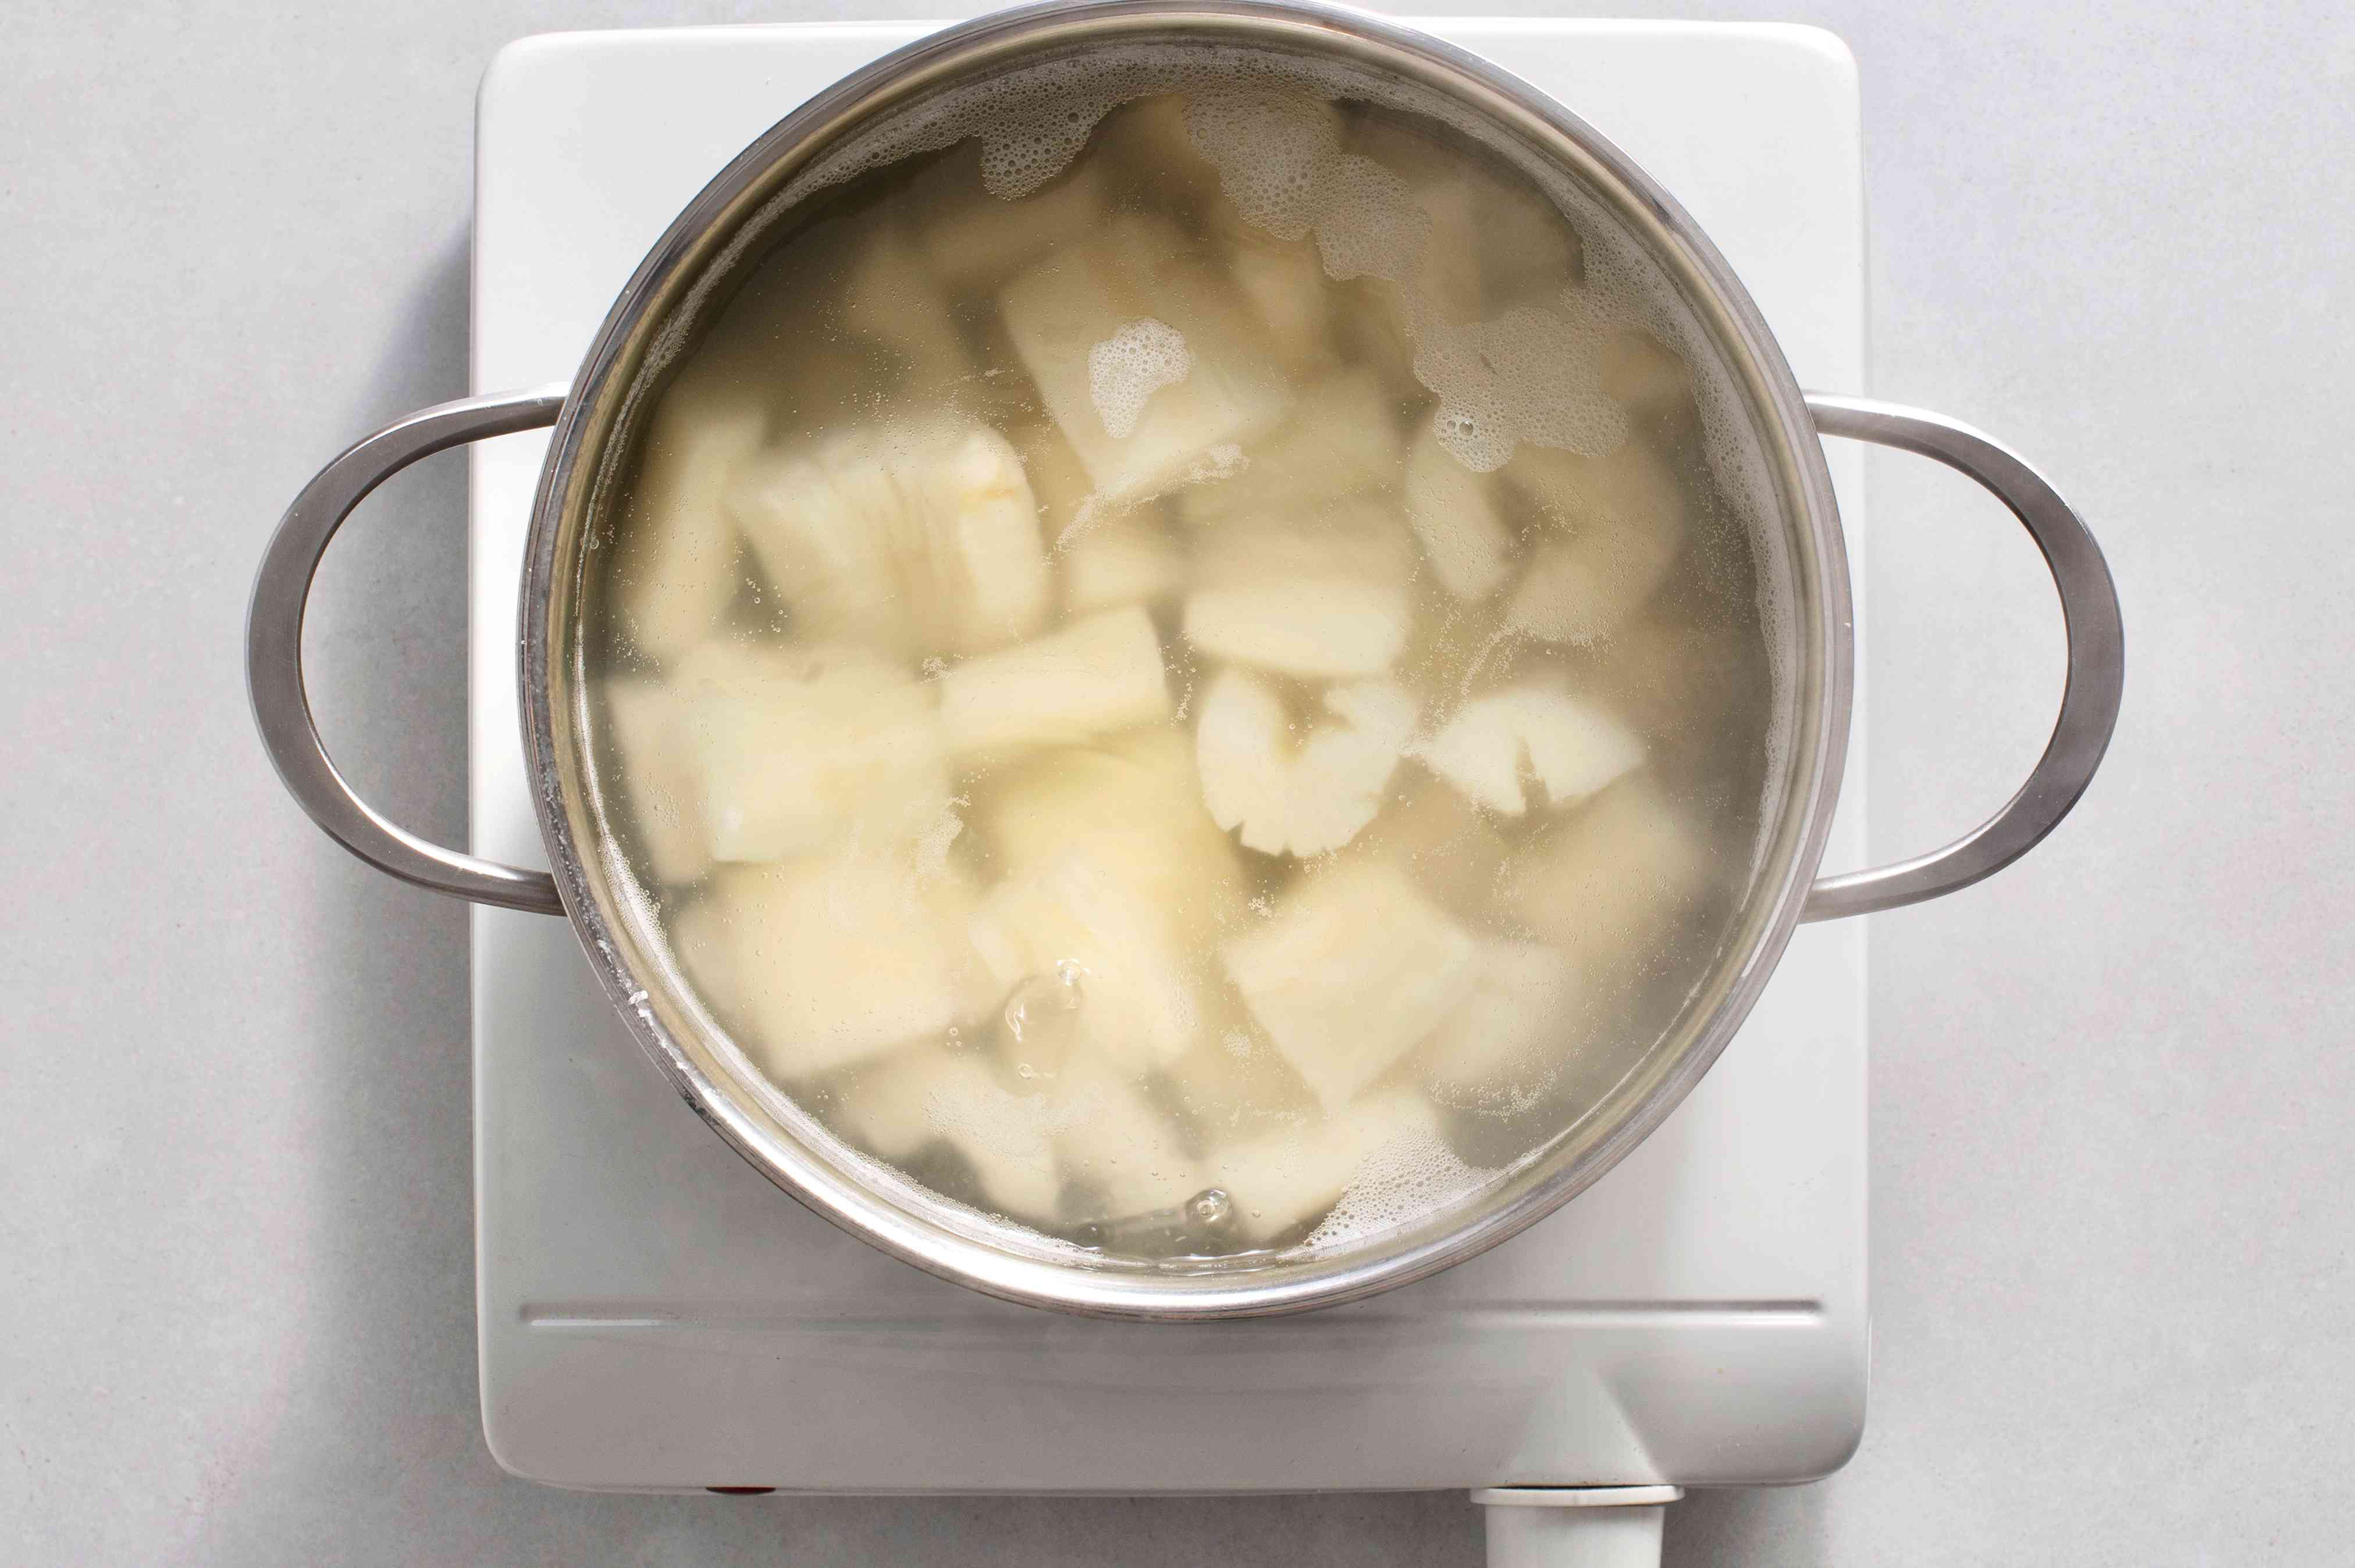 Boil the yuca in salted water